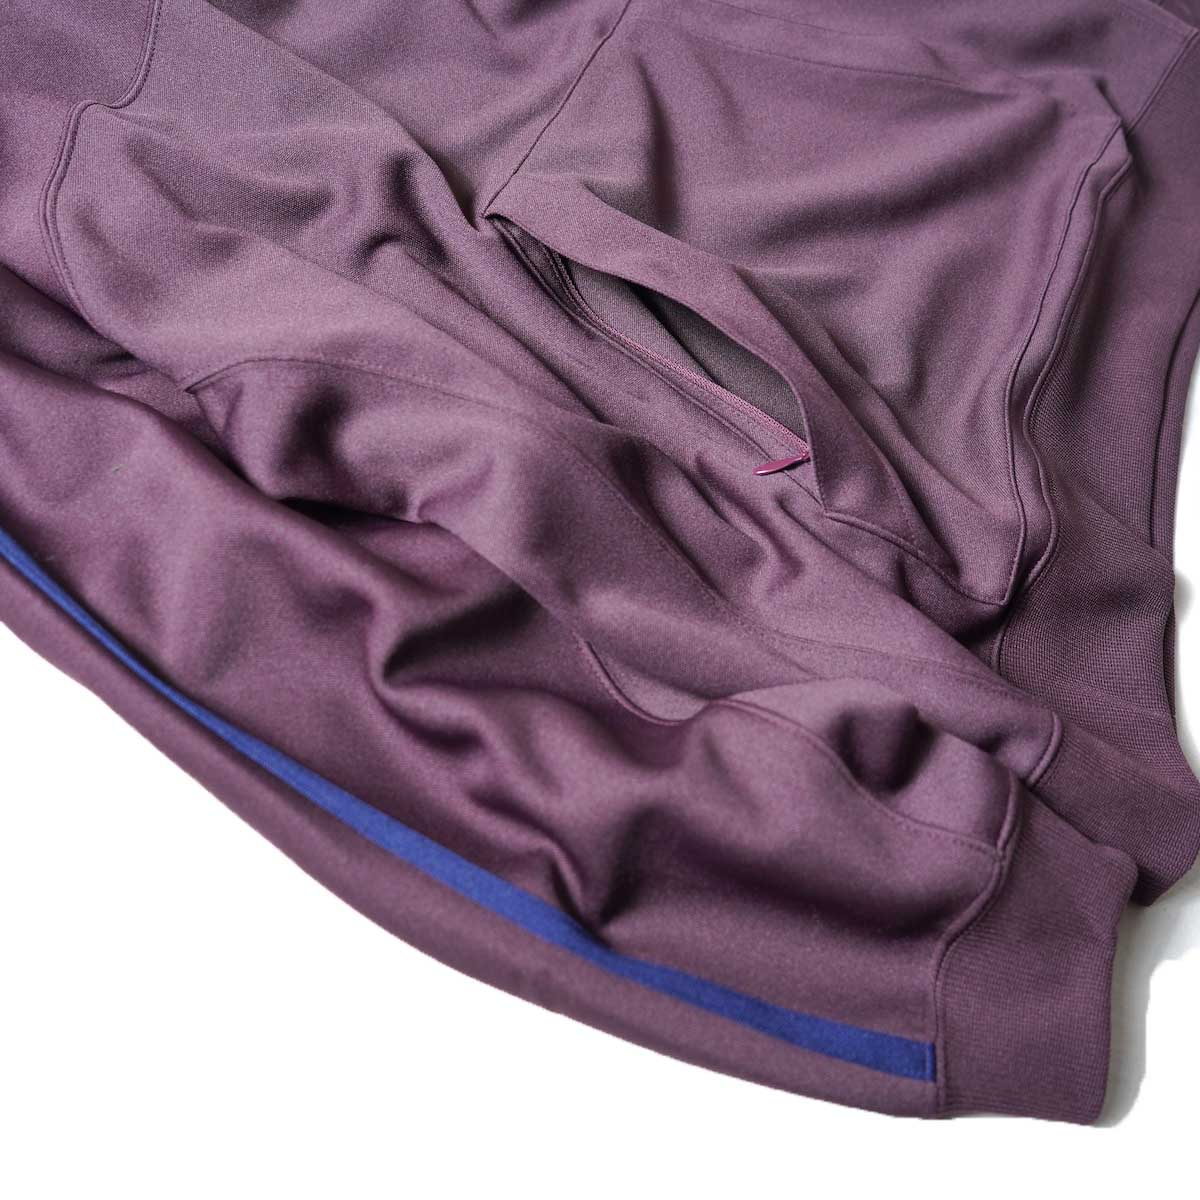 South2 West8 / Trainer Hoody - Poly Smooth (Burgundy)ポケット